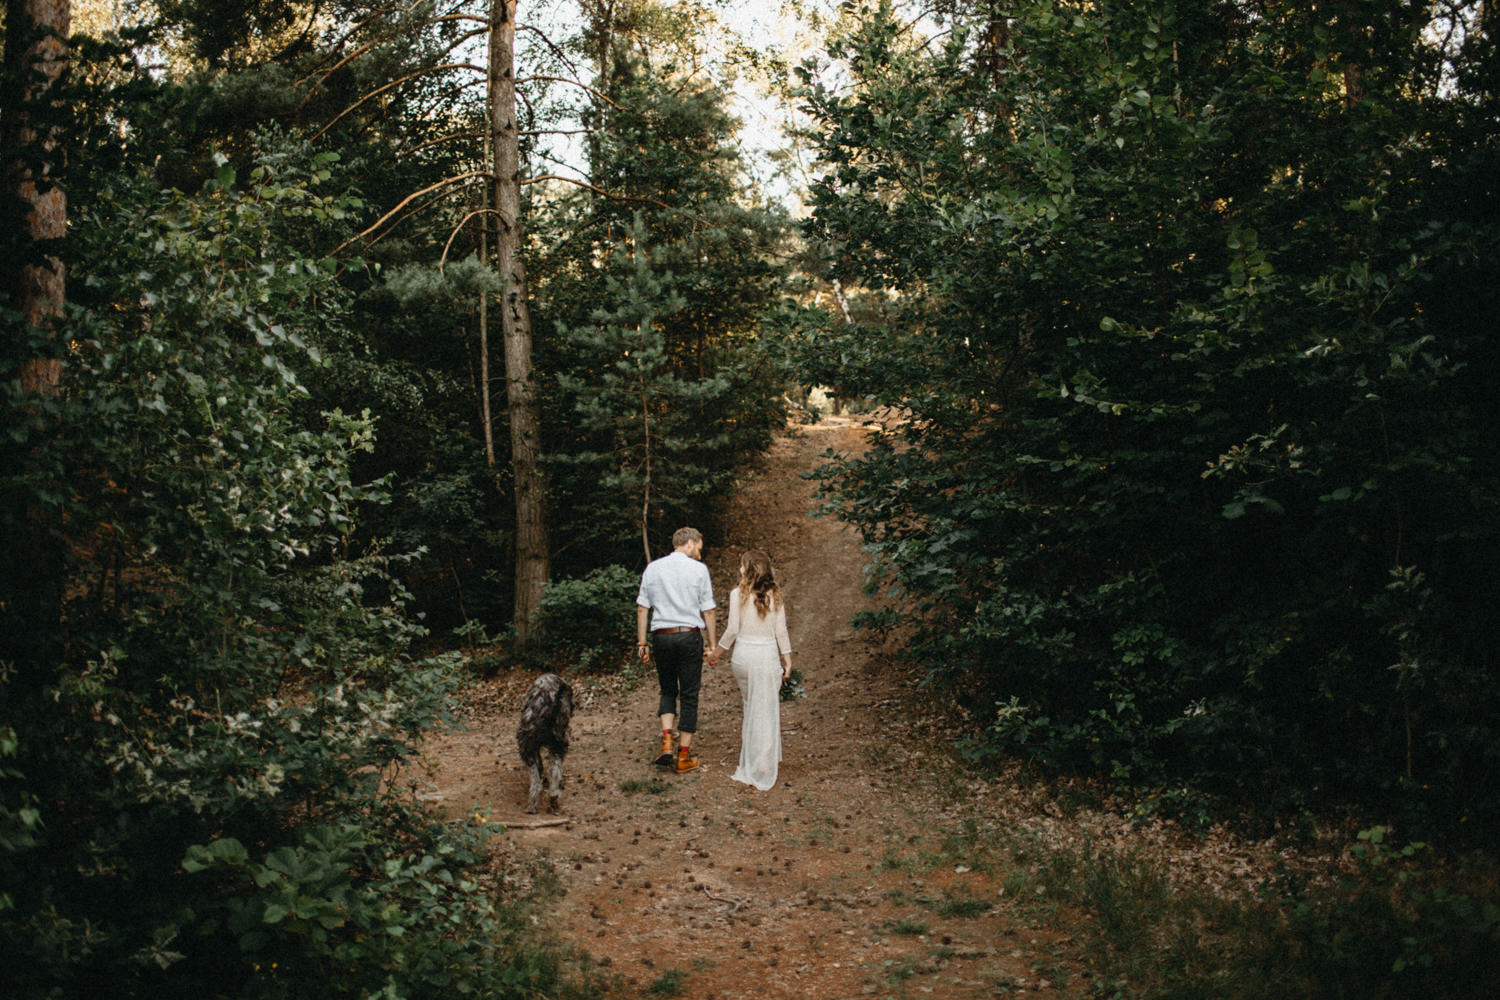 husband and wife walking through the forest